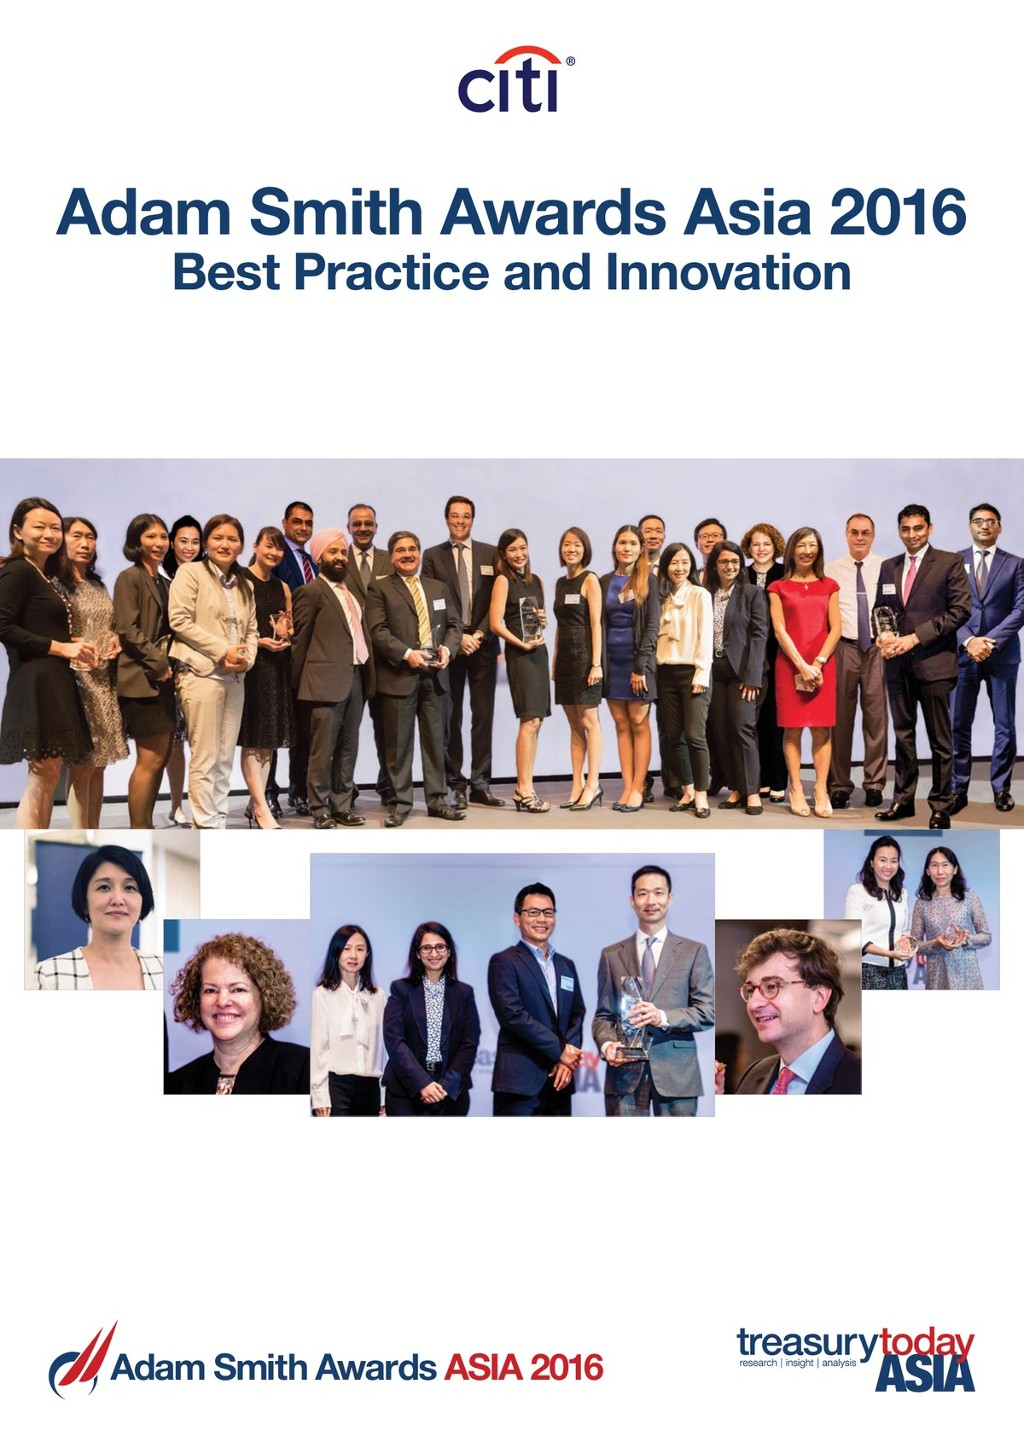 Adam Smith Awards Asia 2016: Citi Supplement